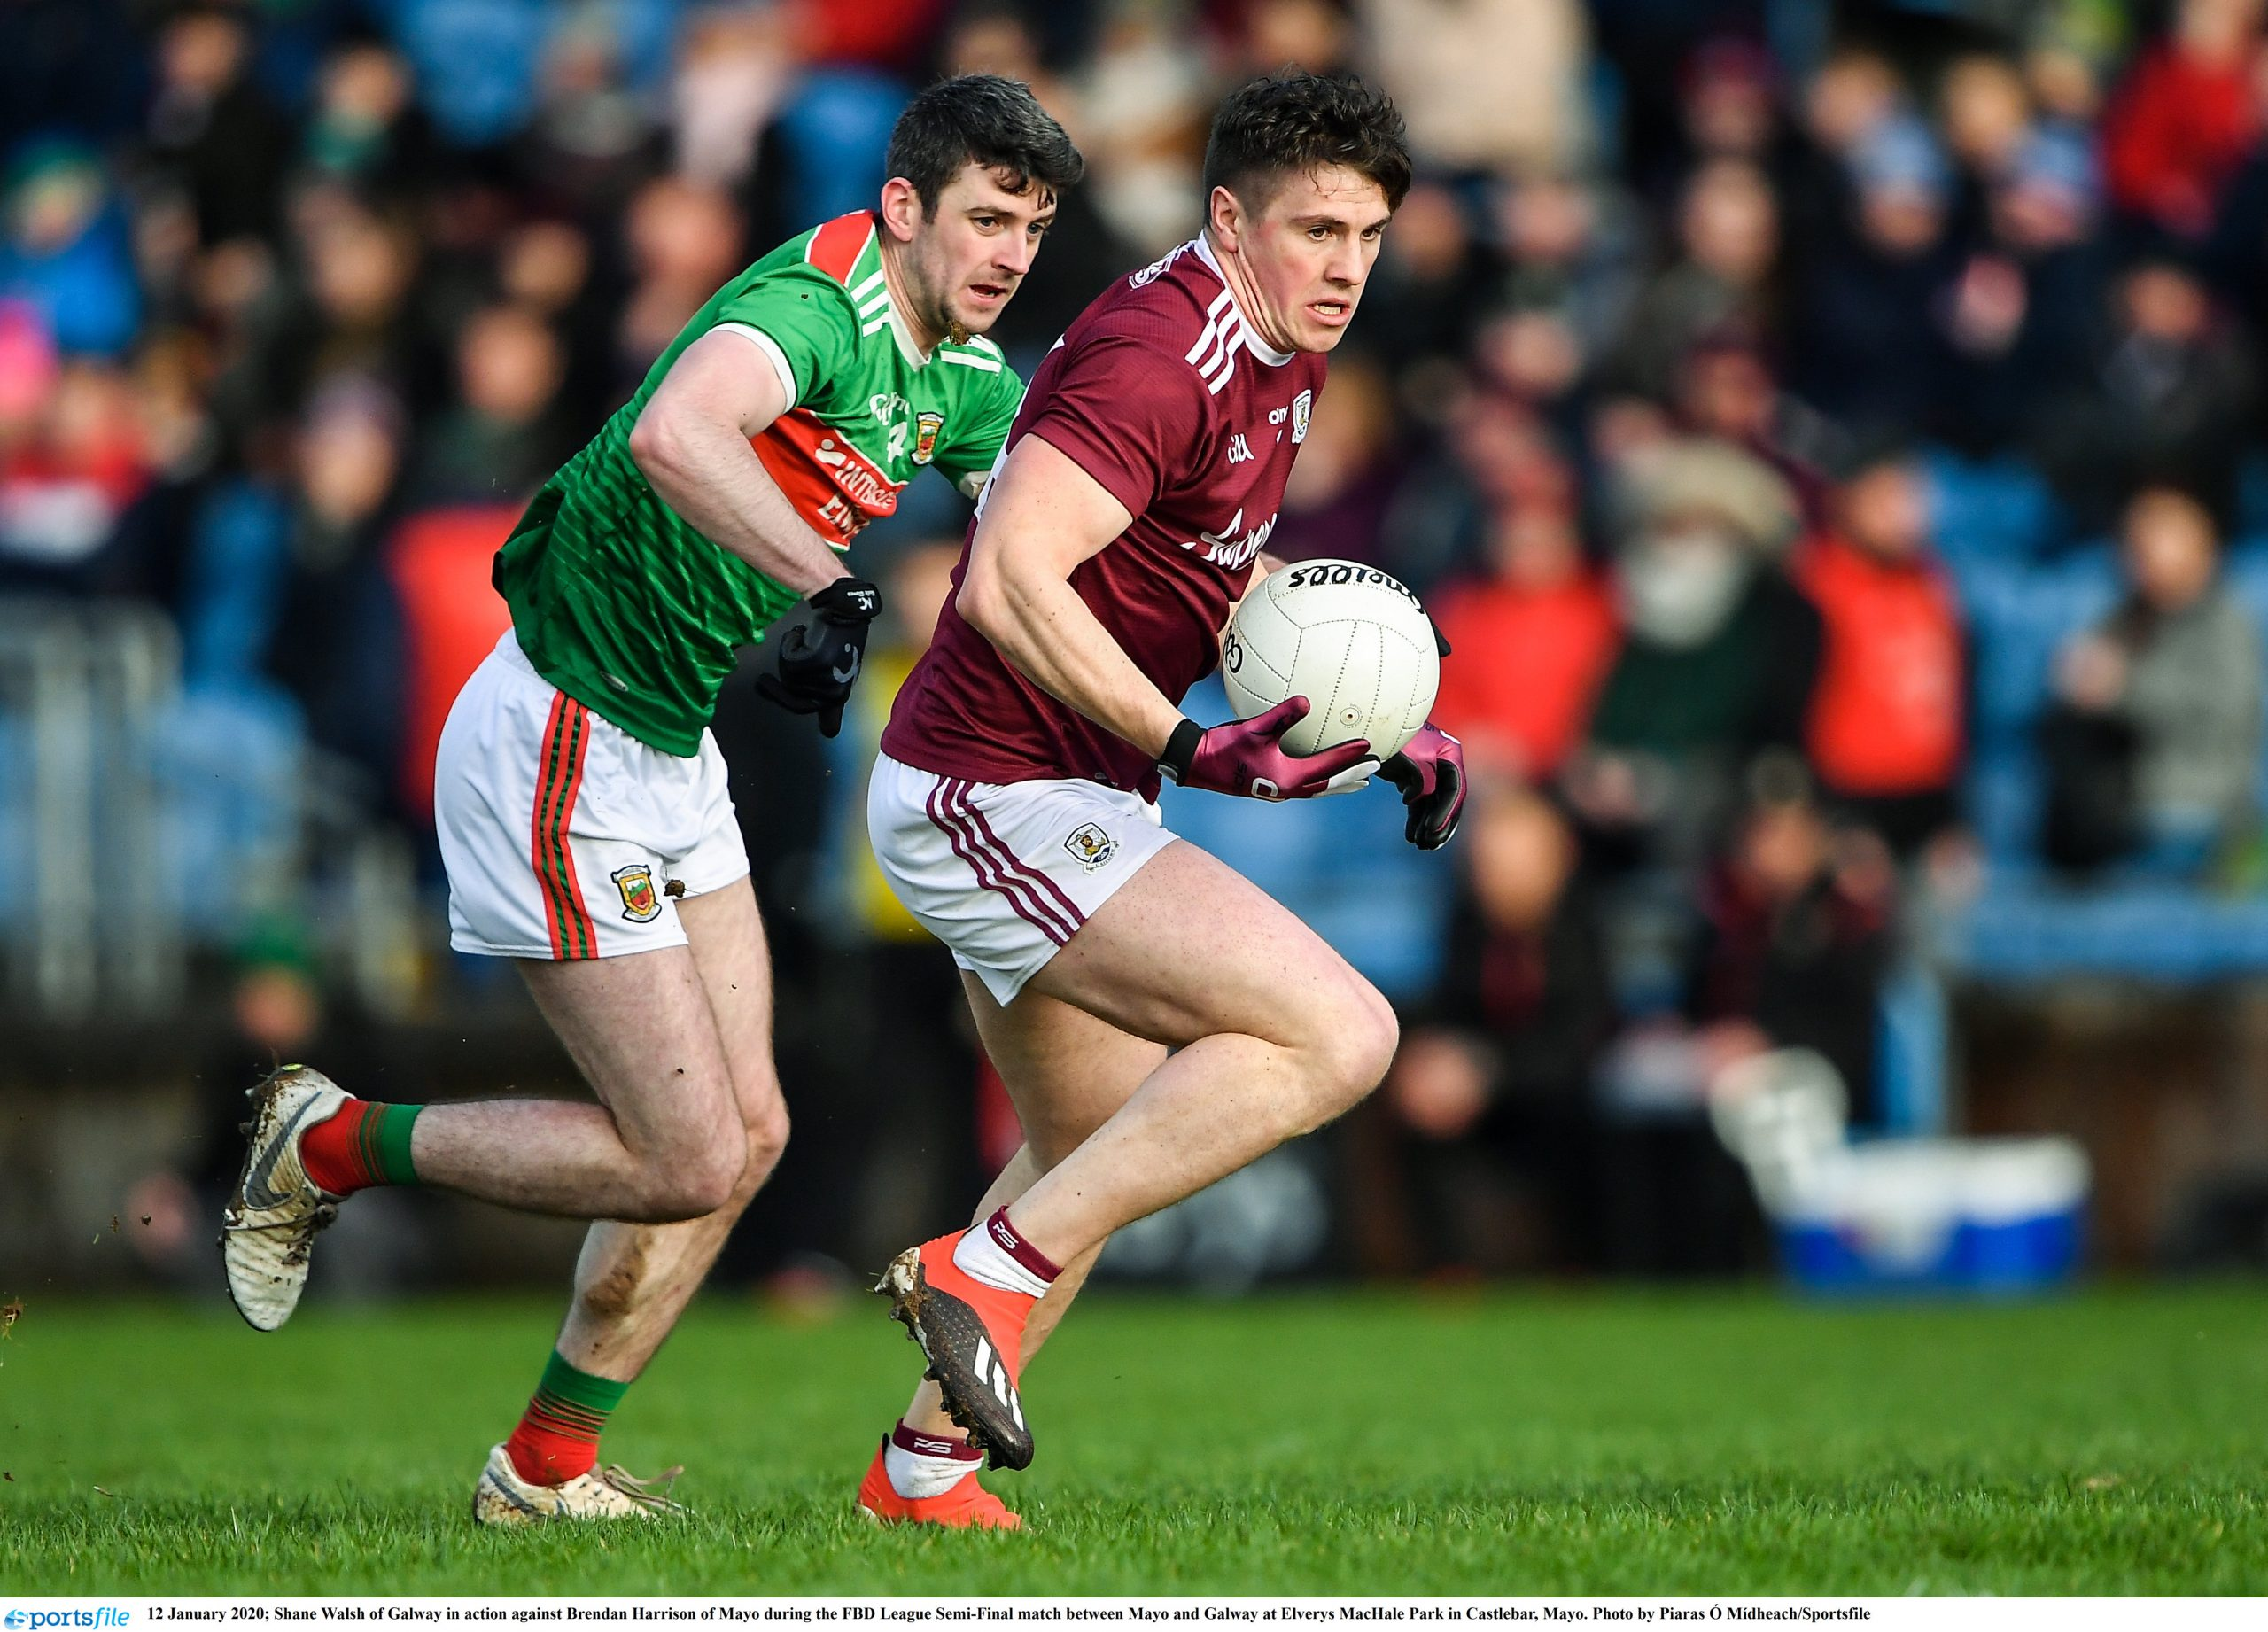 Penalty Drama in Castlebar as Galway Edge out Mayo in FBD Thriller